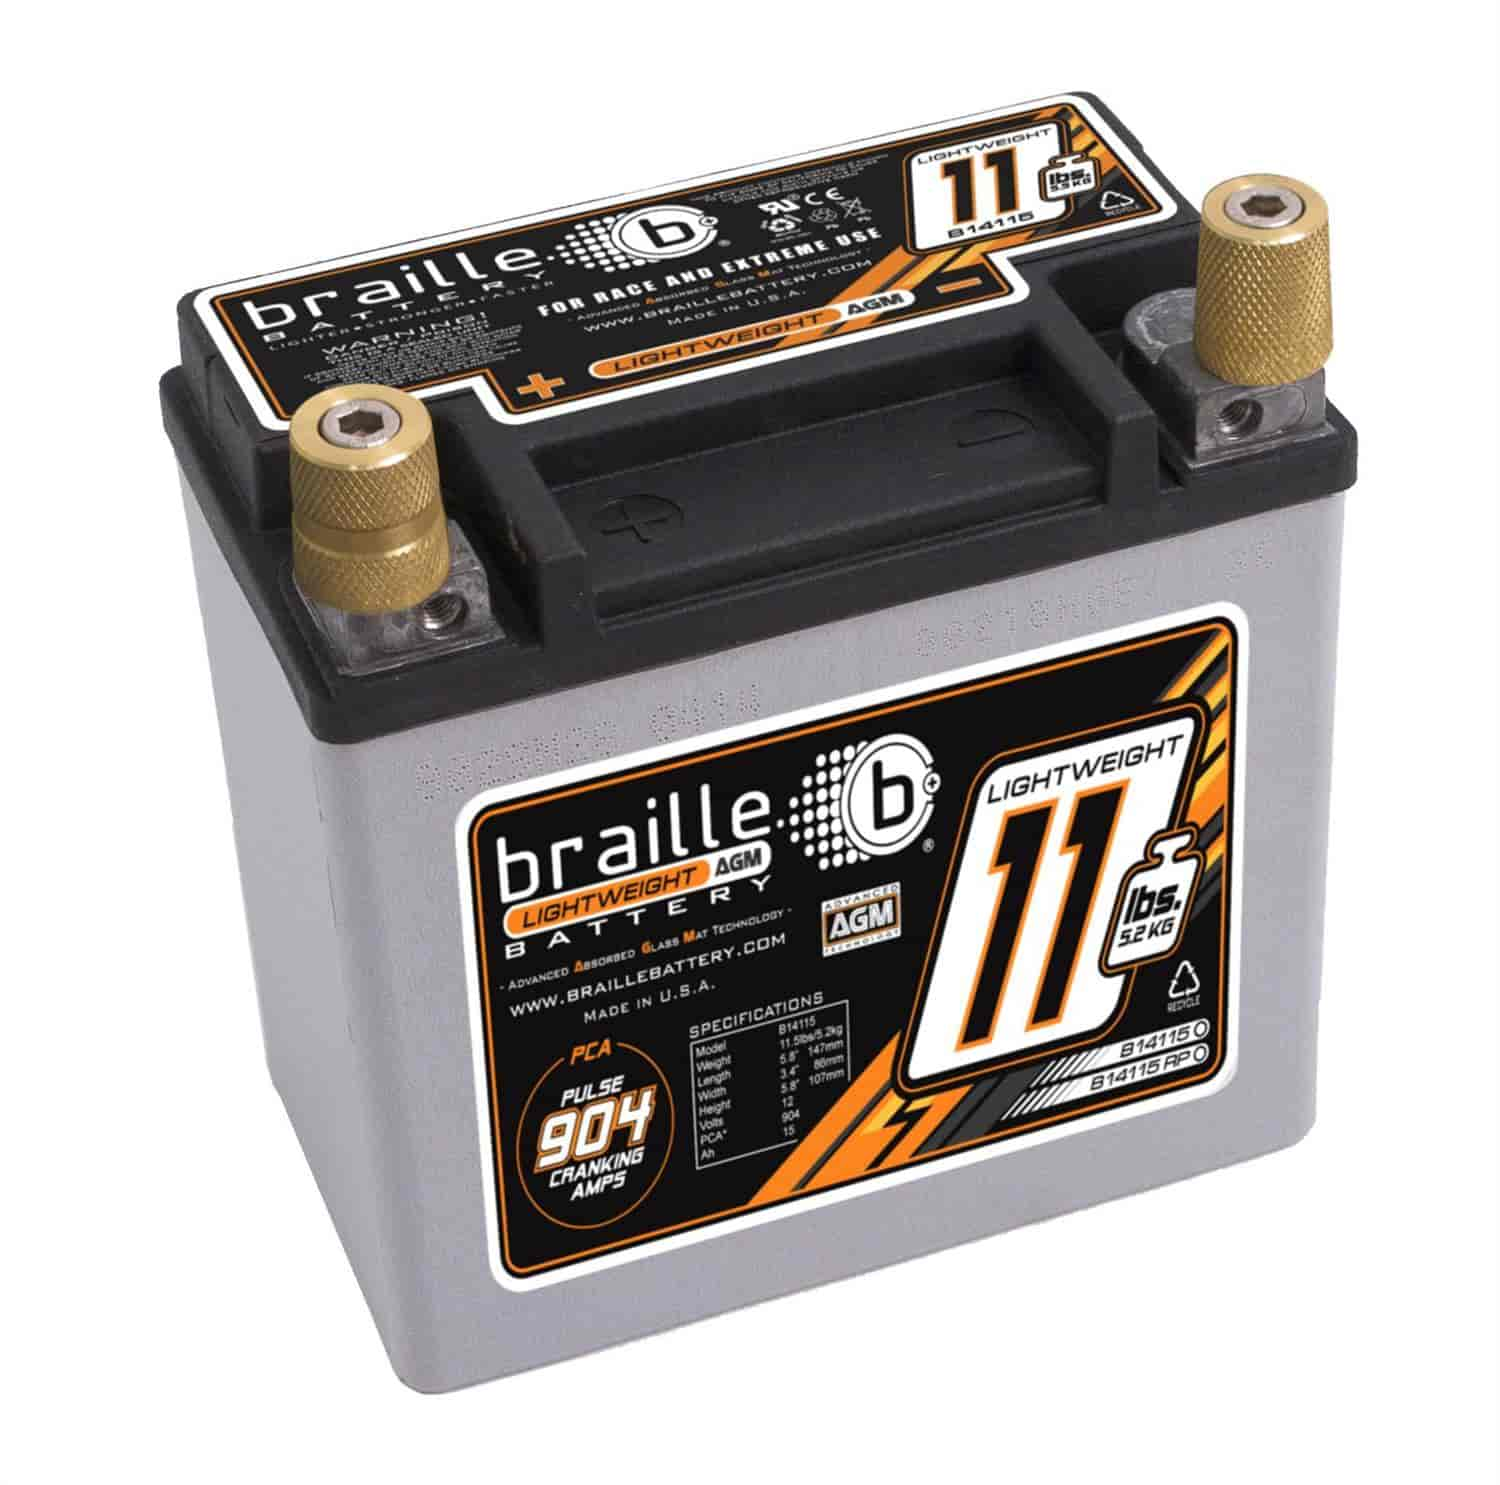 Braille Auto B14115 - Braille Advanced AGM Lightweight Racing Batteries